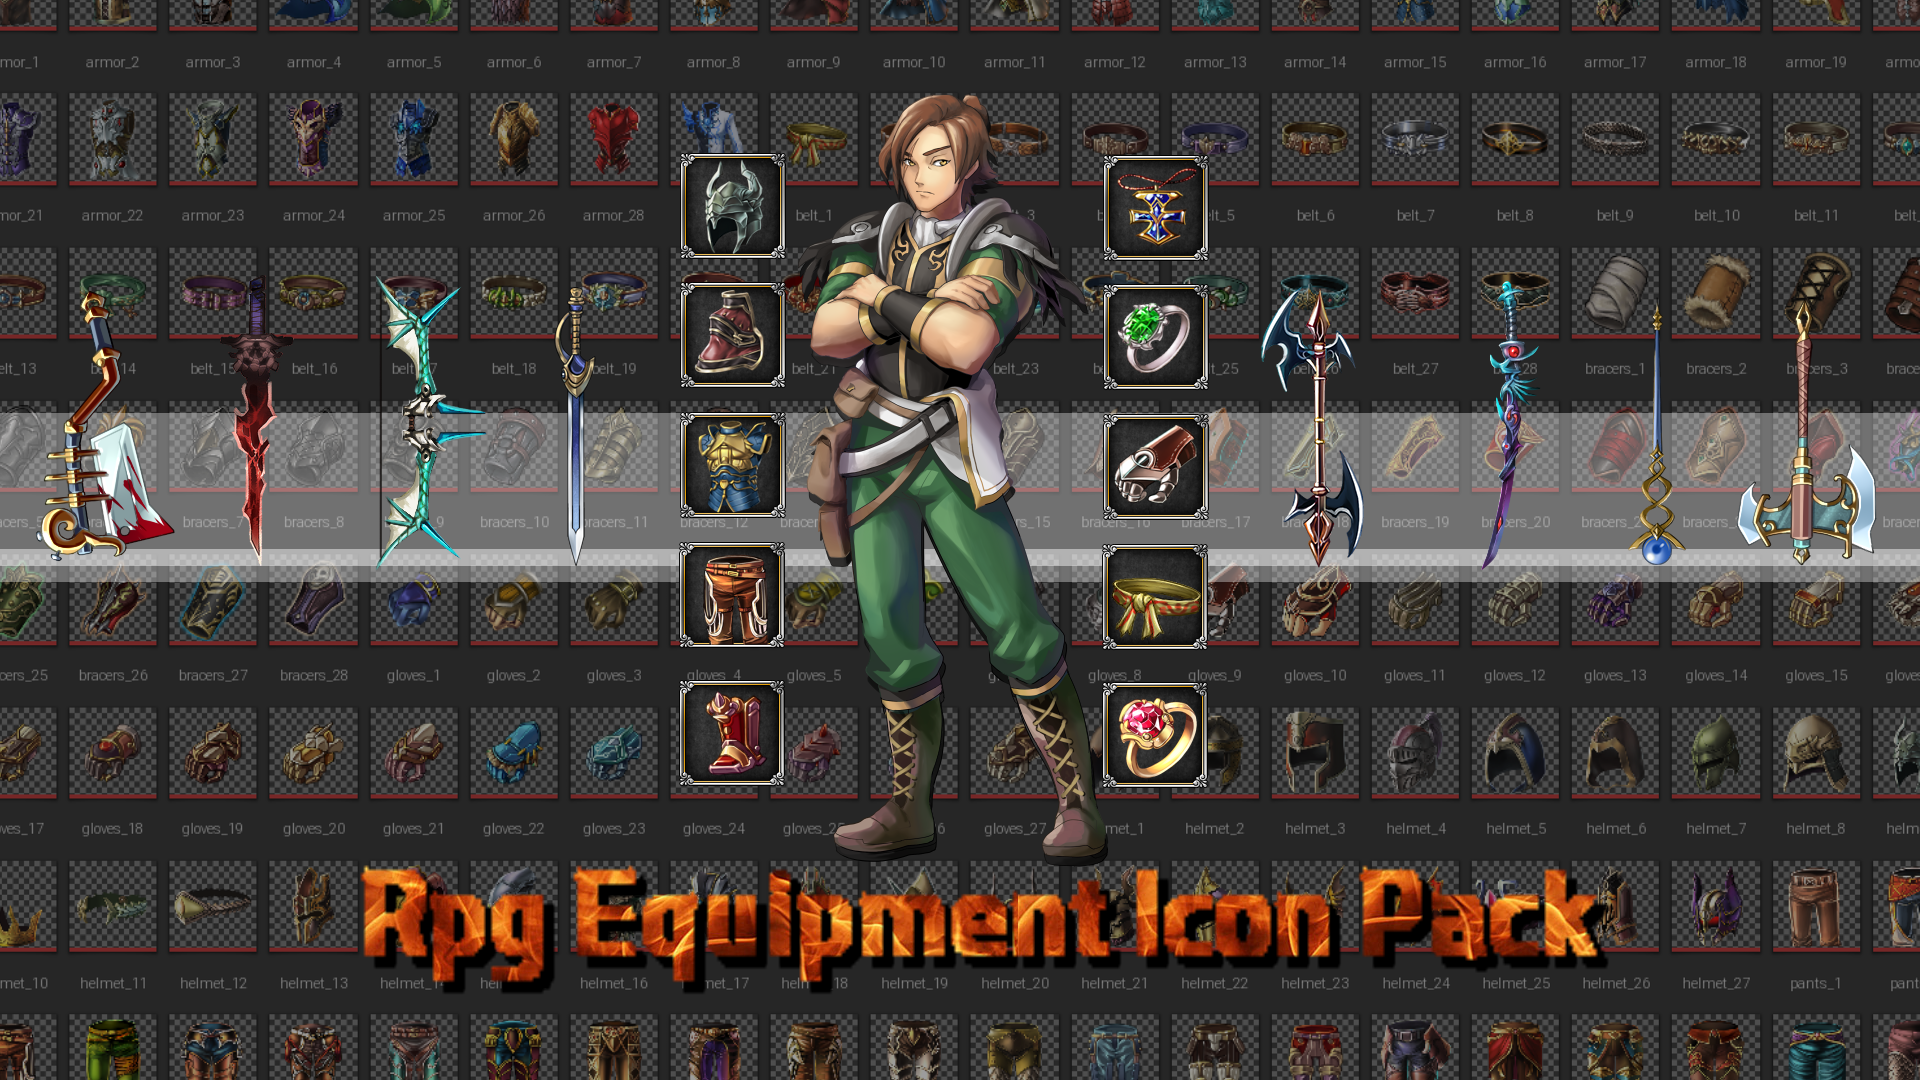 RPG Equipment Icon Pack by FilterGame in 2D Assets - UE4 Marketplace